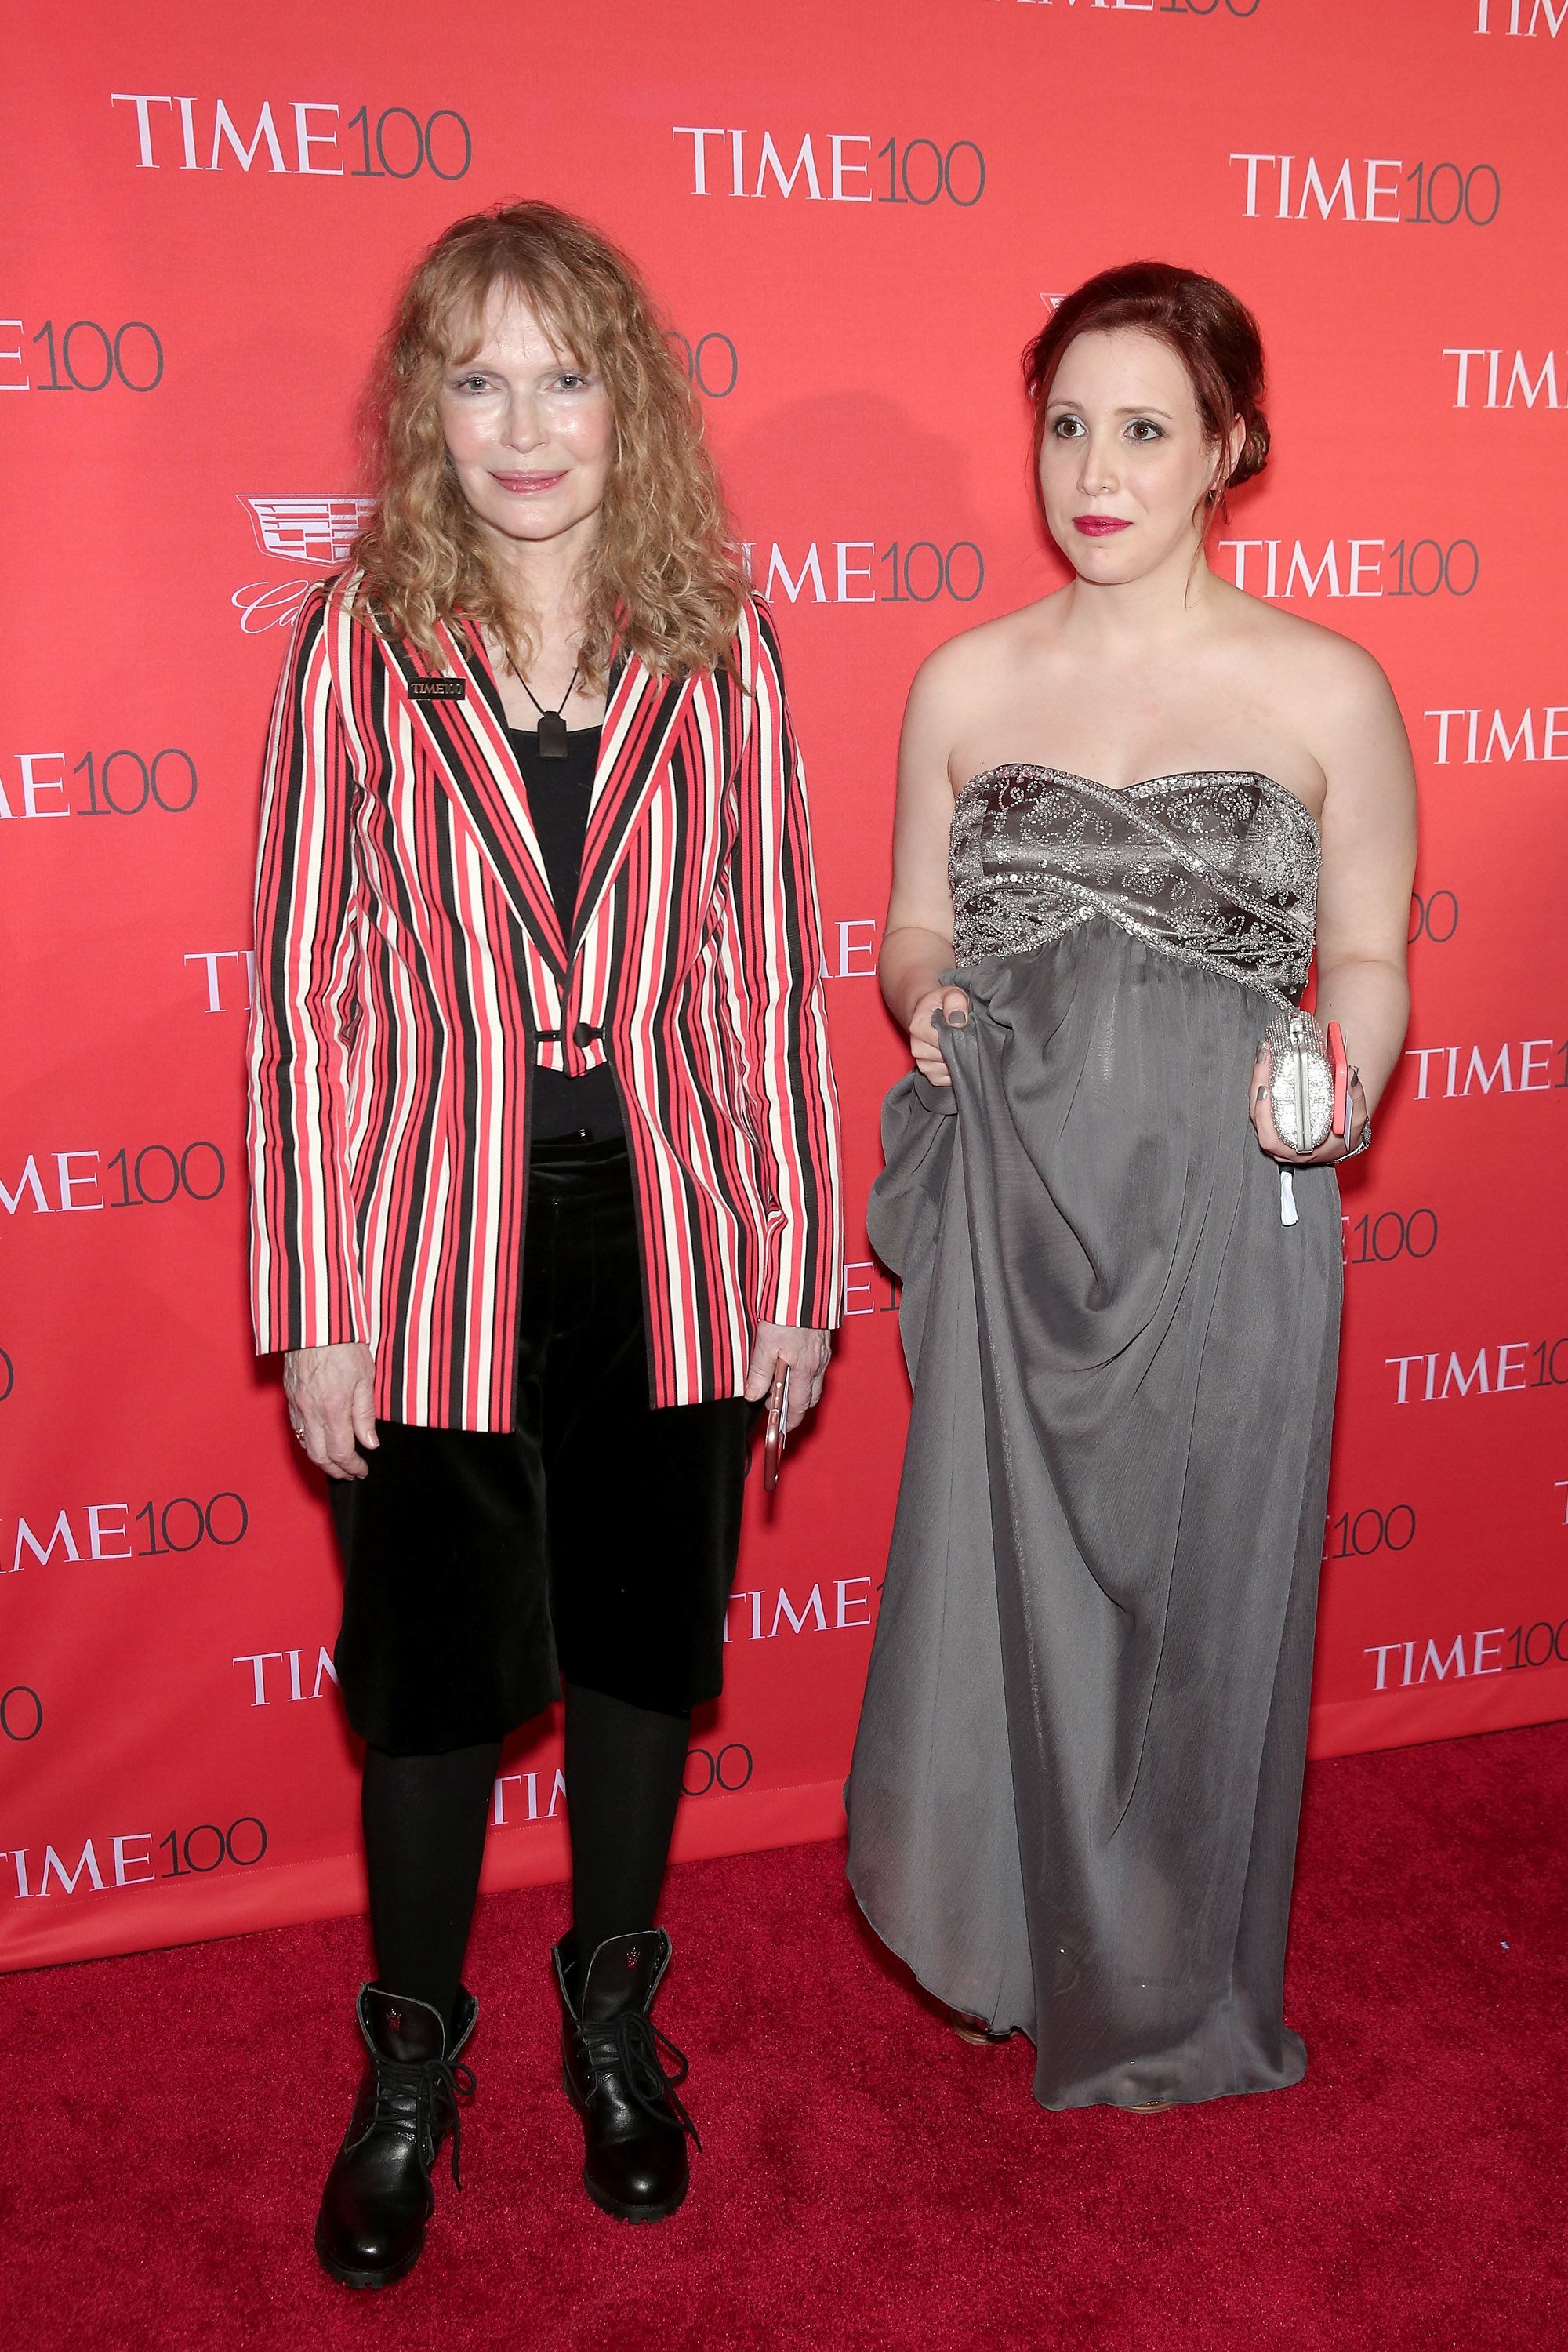 NEW YORK, NY - APRIL 26: Mia Farrow (L) and Dylan Farrow attend the 2016 Time 100 Gala at Frederick P. Rose Hall, Jazz at Lincoln Center on April 26, 2016 in New York City.  (Photo by Neilson Barnard/Getty Images)